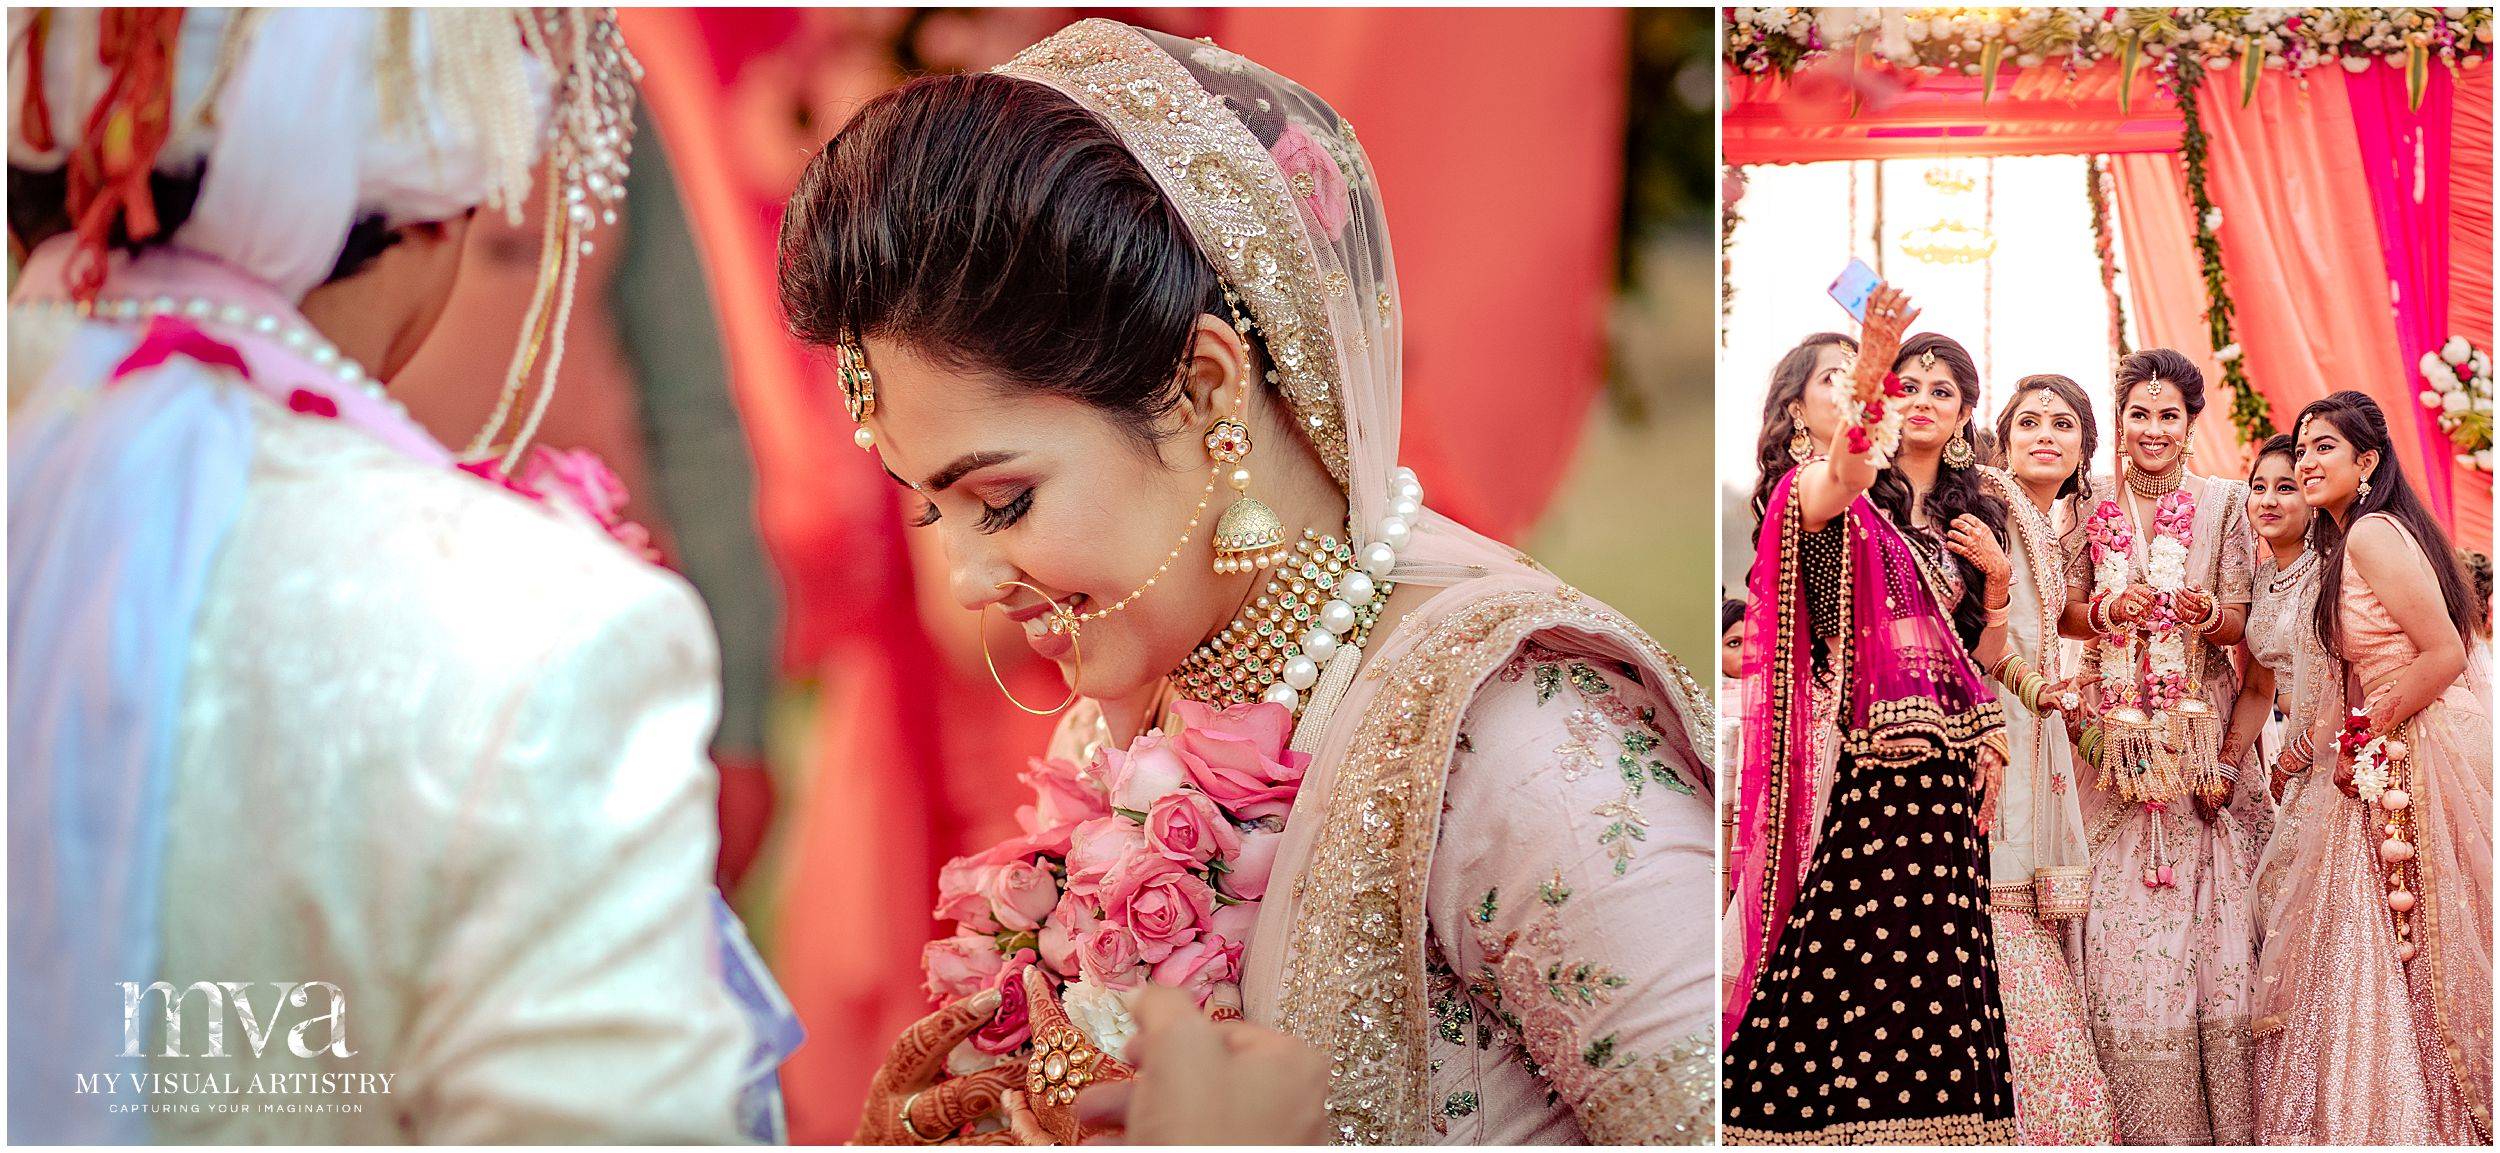 SAHIL_MANALI_MYVISUALARTISTRY__MVA_WEDDING_PHOTOGRAPHY_GEORGEGUPTA_DESTINATION_ASIAN_0008.jpg